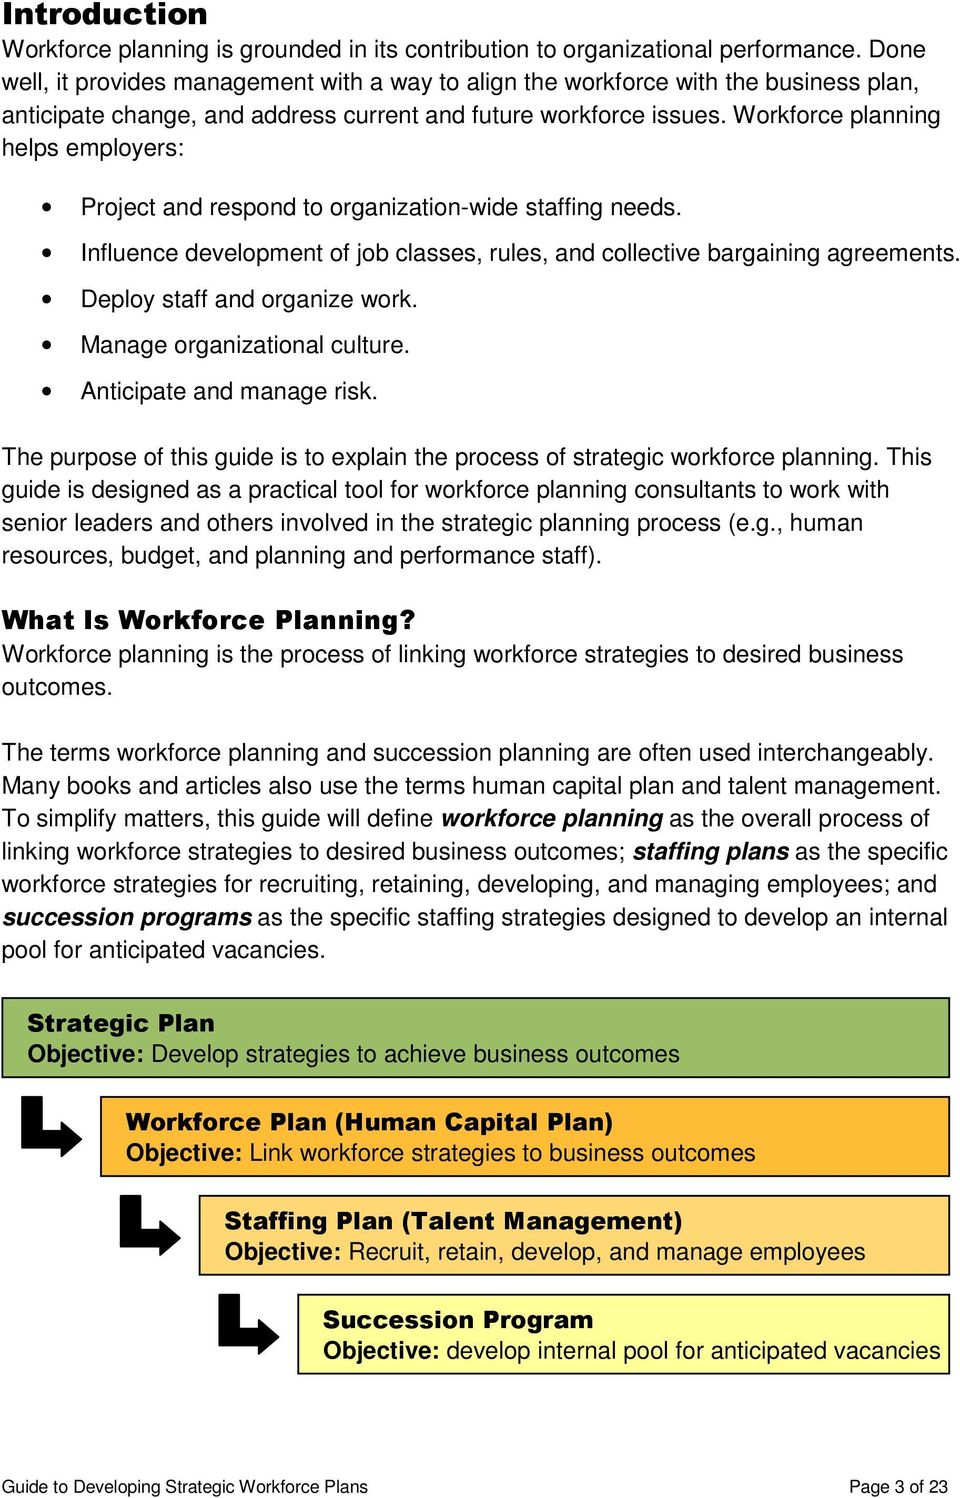 Workforce planning helps employers: Project and respond to organization-wide staffing needs. Influence development of job classes, rules, and collective bargaining agreements.